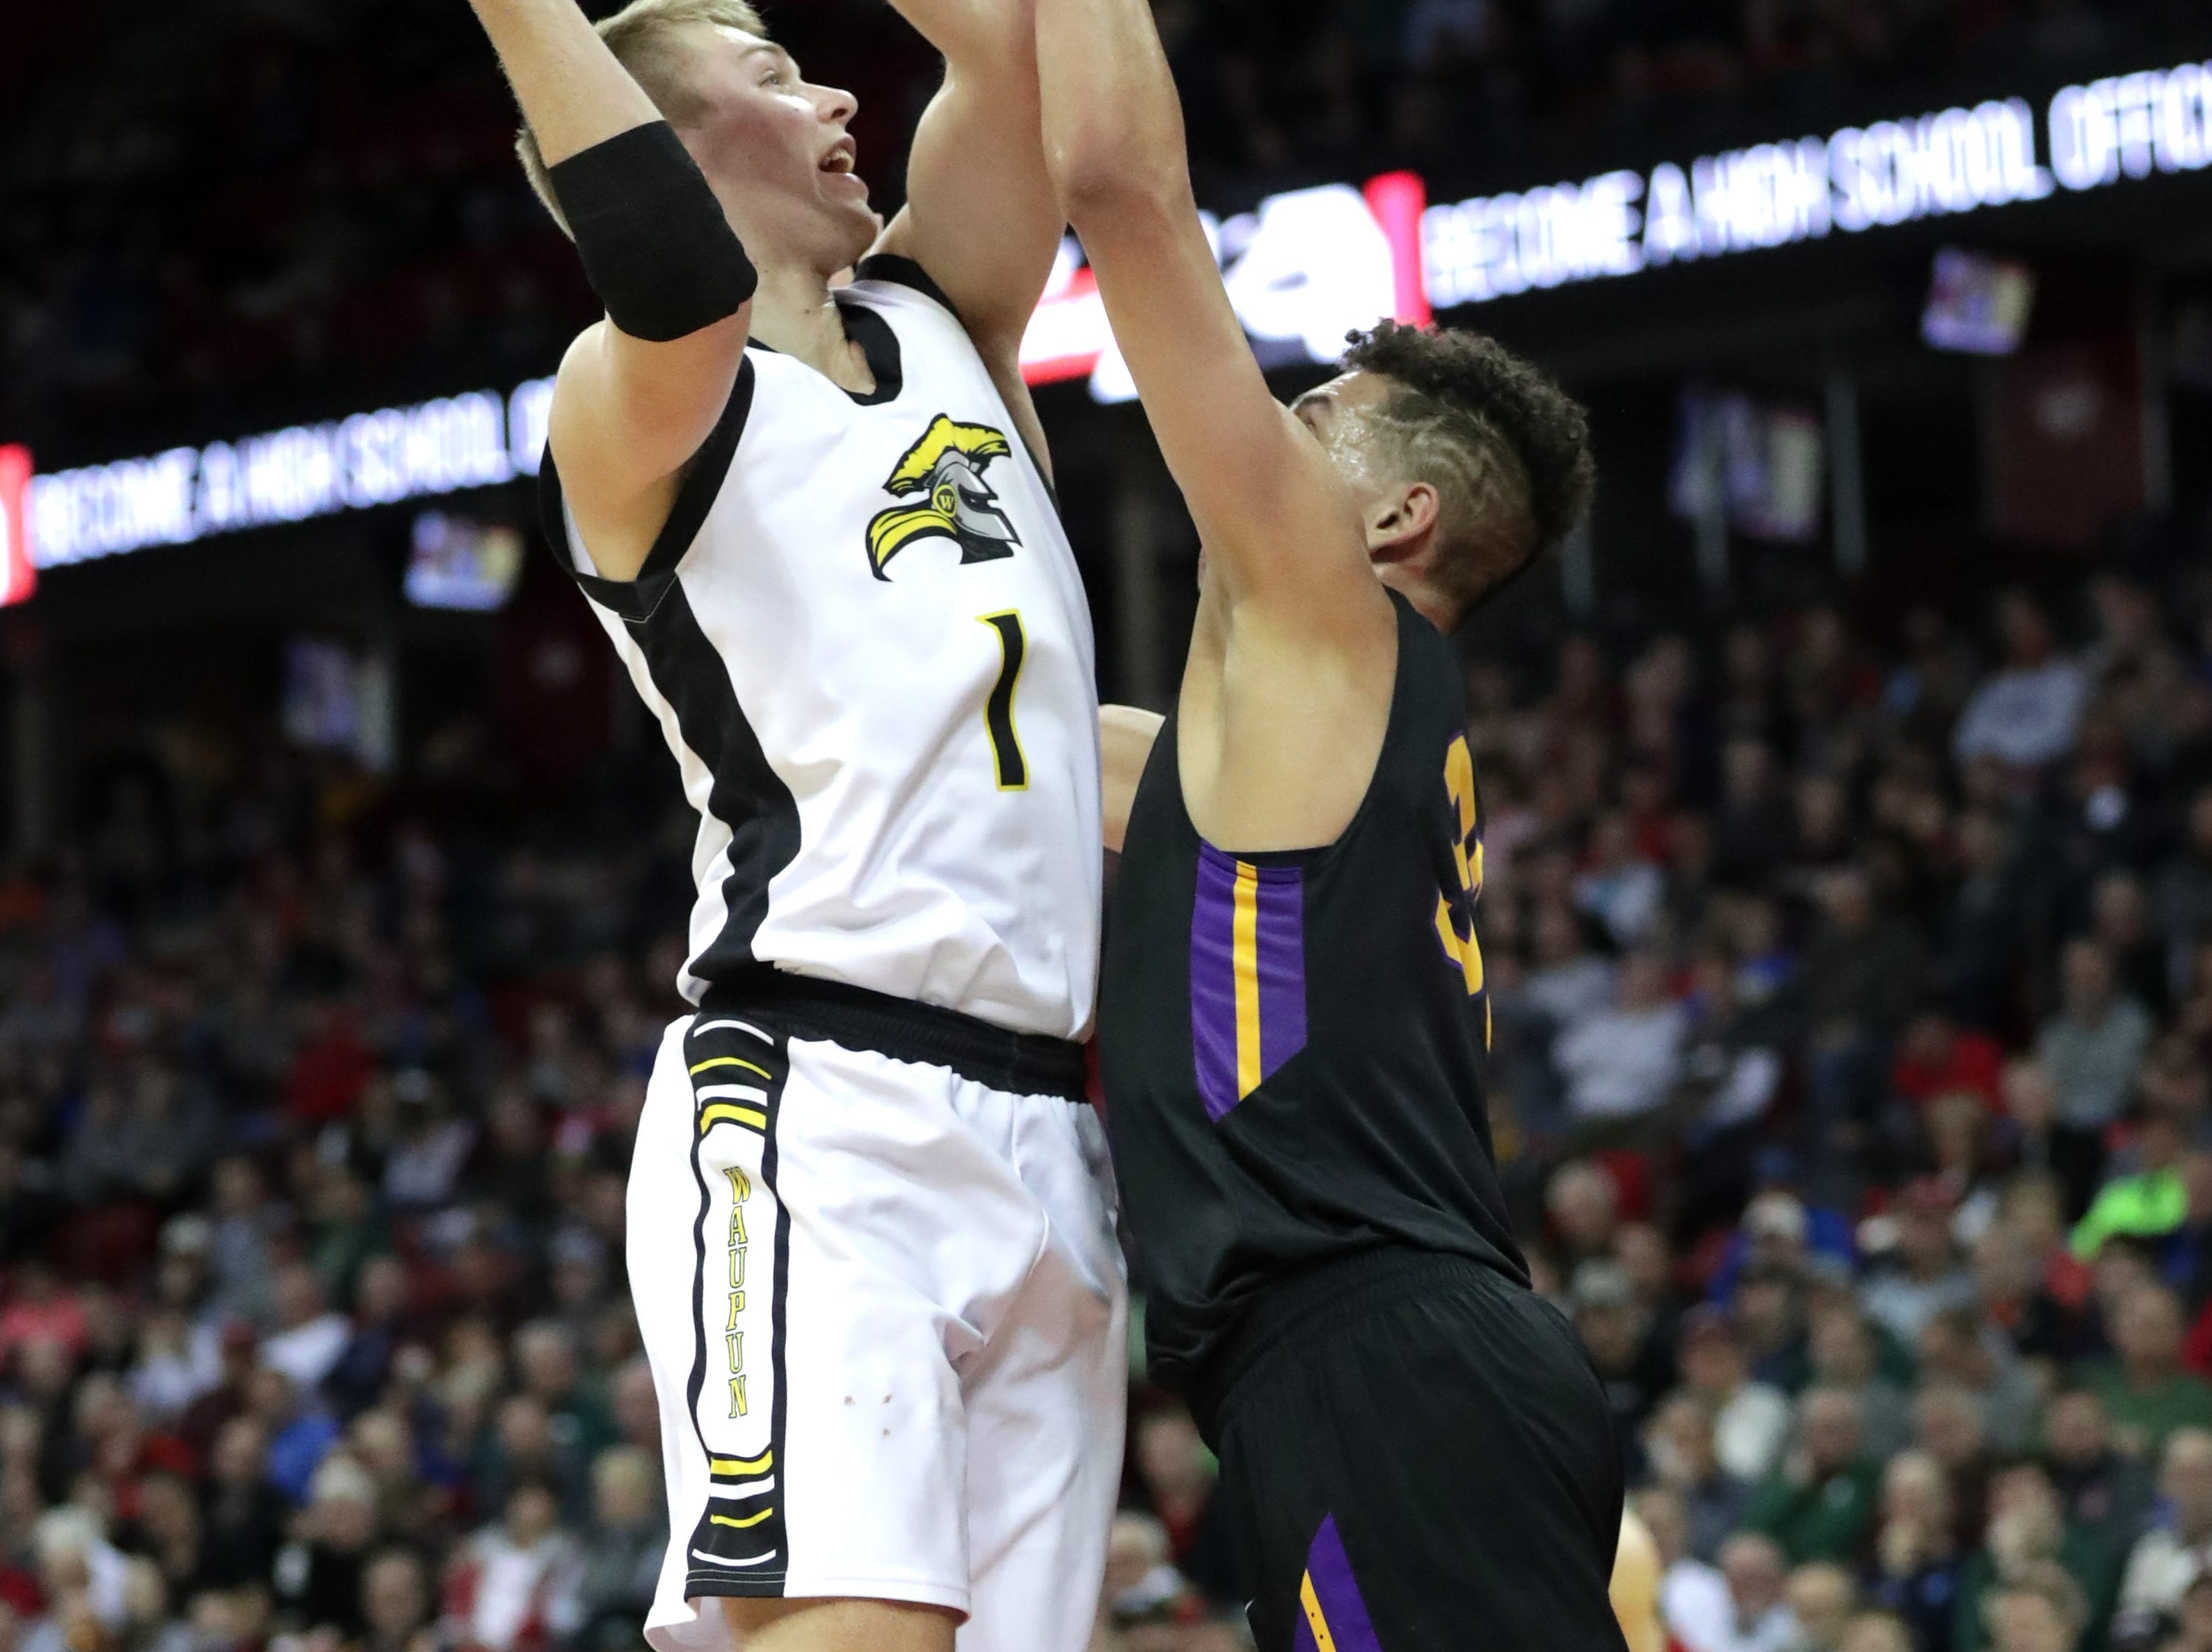 Denmark High School's #33 Patrick Suemnick against Waupun High School's #1 Marcus Domask during their WIAA Division 3 boys basketball state semifinal on Thursday, March 14, 2019, at the KohlCenter in Madison, Wis.